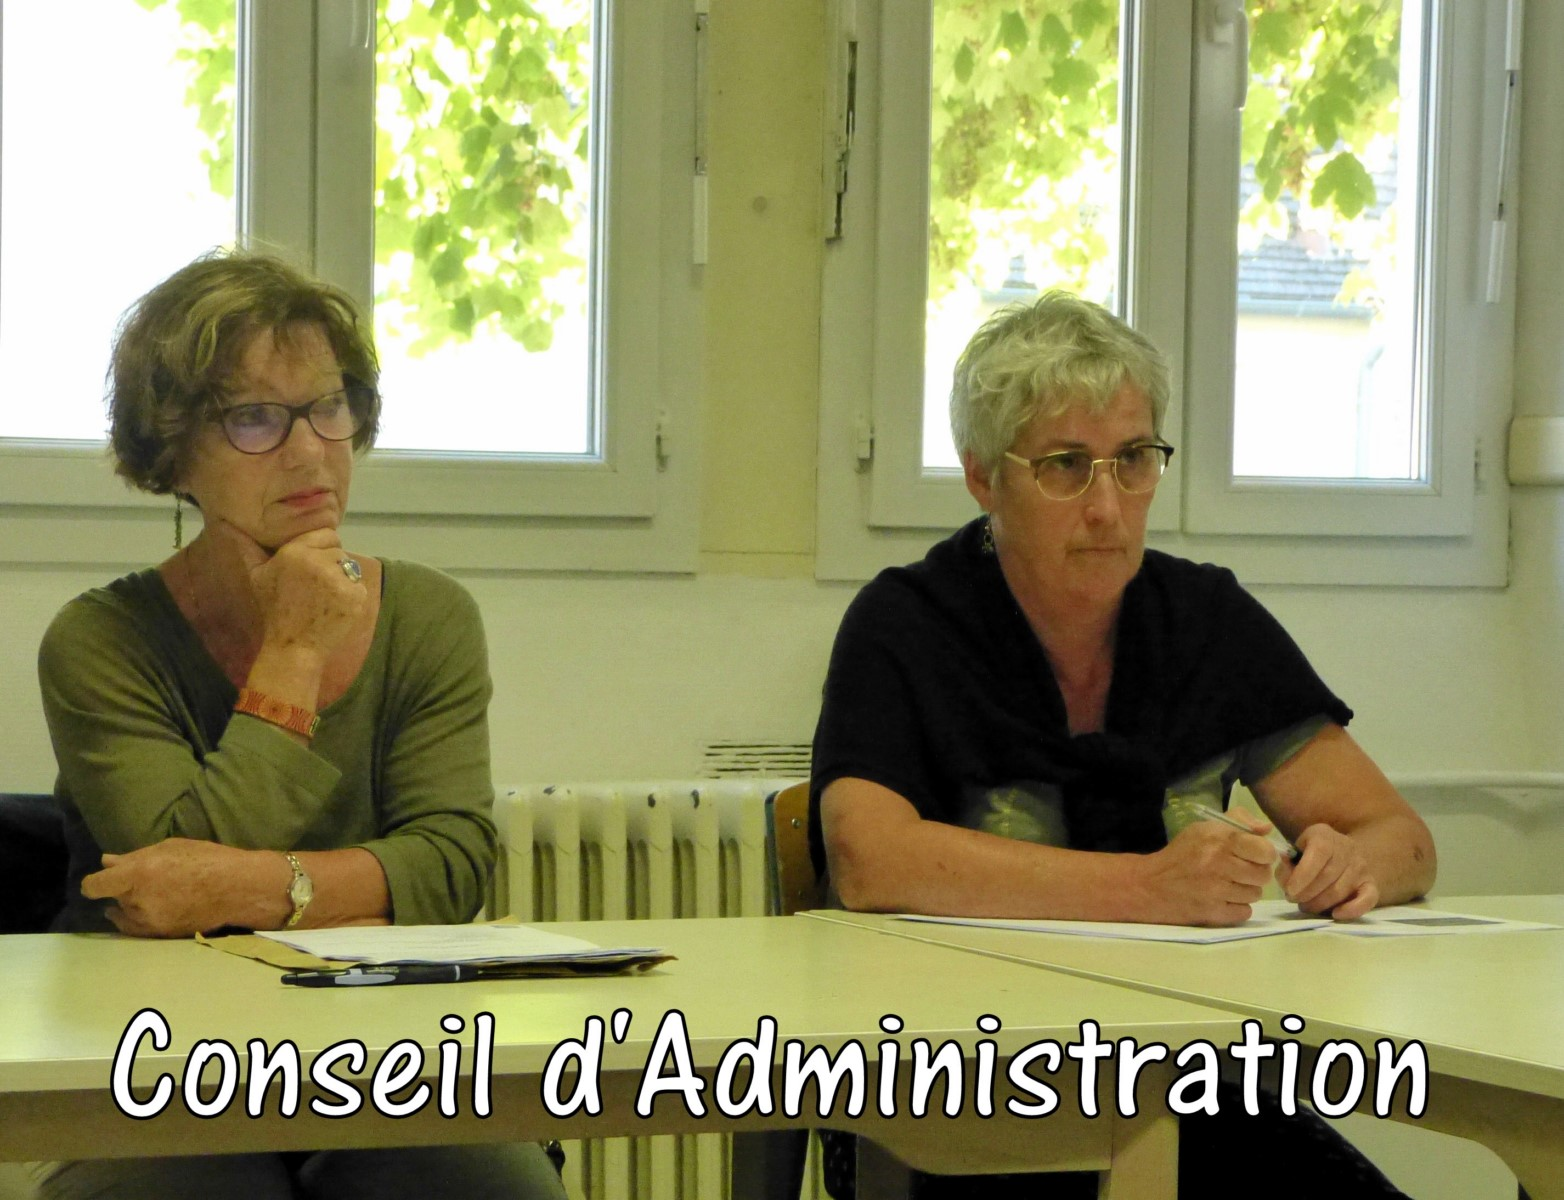 7Conseil d'Administration (1)